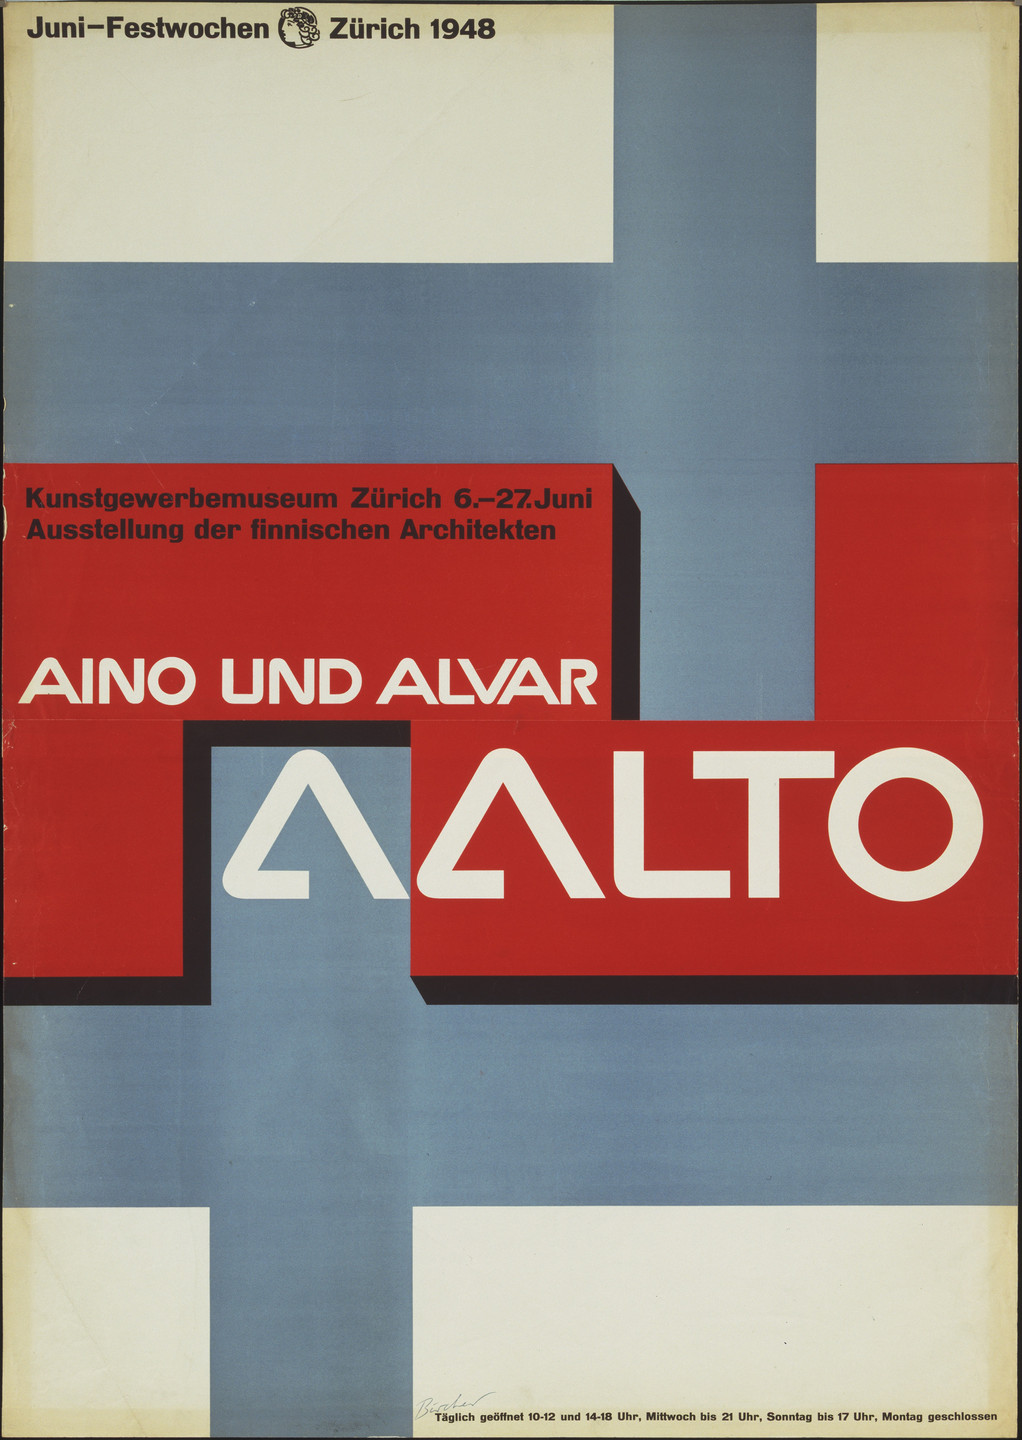 Rudolf Bircher. Aino und Alvar Aalto (Poster for an exhibition at the Kunstgewerbemuseum, Zürich). 1948